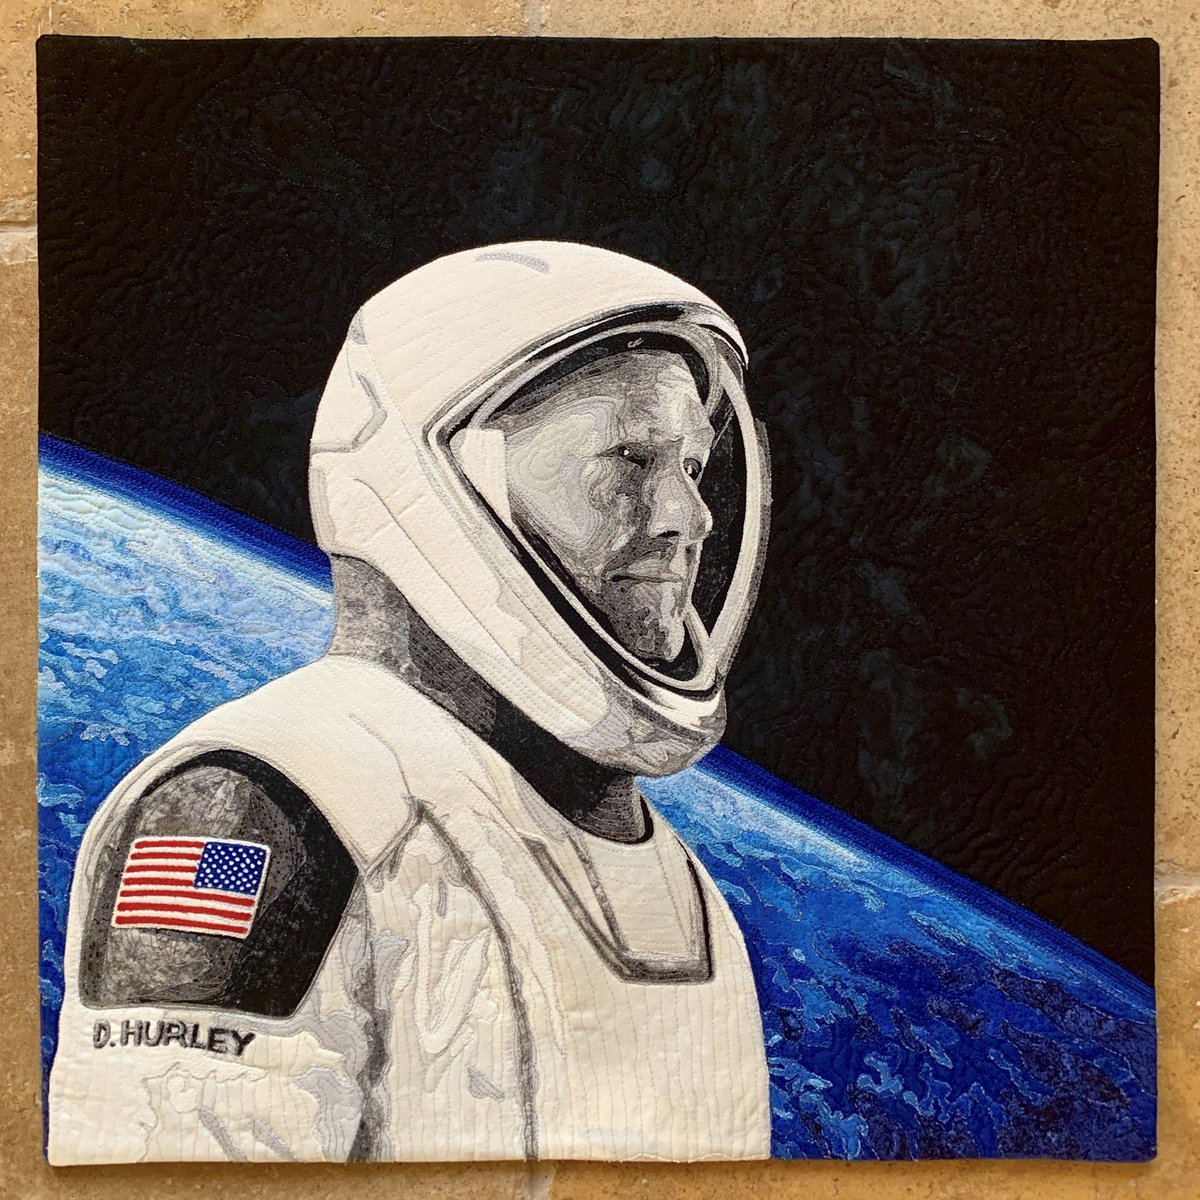 """My latest art quilt is @Astro_Doug's SpaceX crew photo! I used a picture of Earth he took from ISS as inspiration for the background. Our son Jack proposed the idea of making Doug B&W with only the flag on his shoulder colored. Perfect! Medium: fabric & thread, 21.5"""" square. https://t.co/G2OOJ1KB6q"""